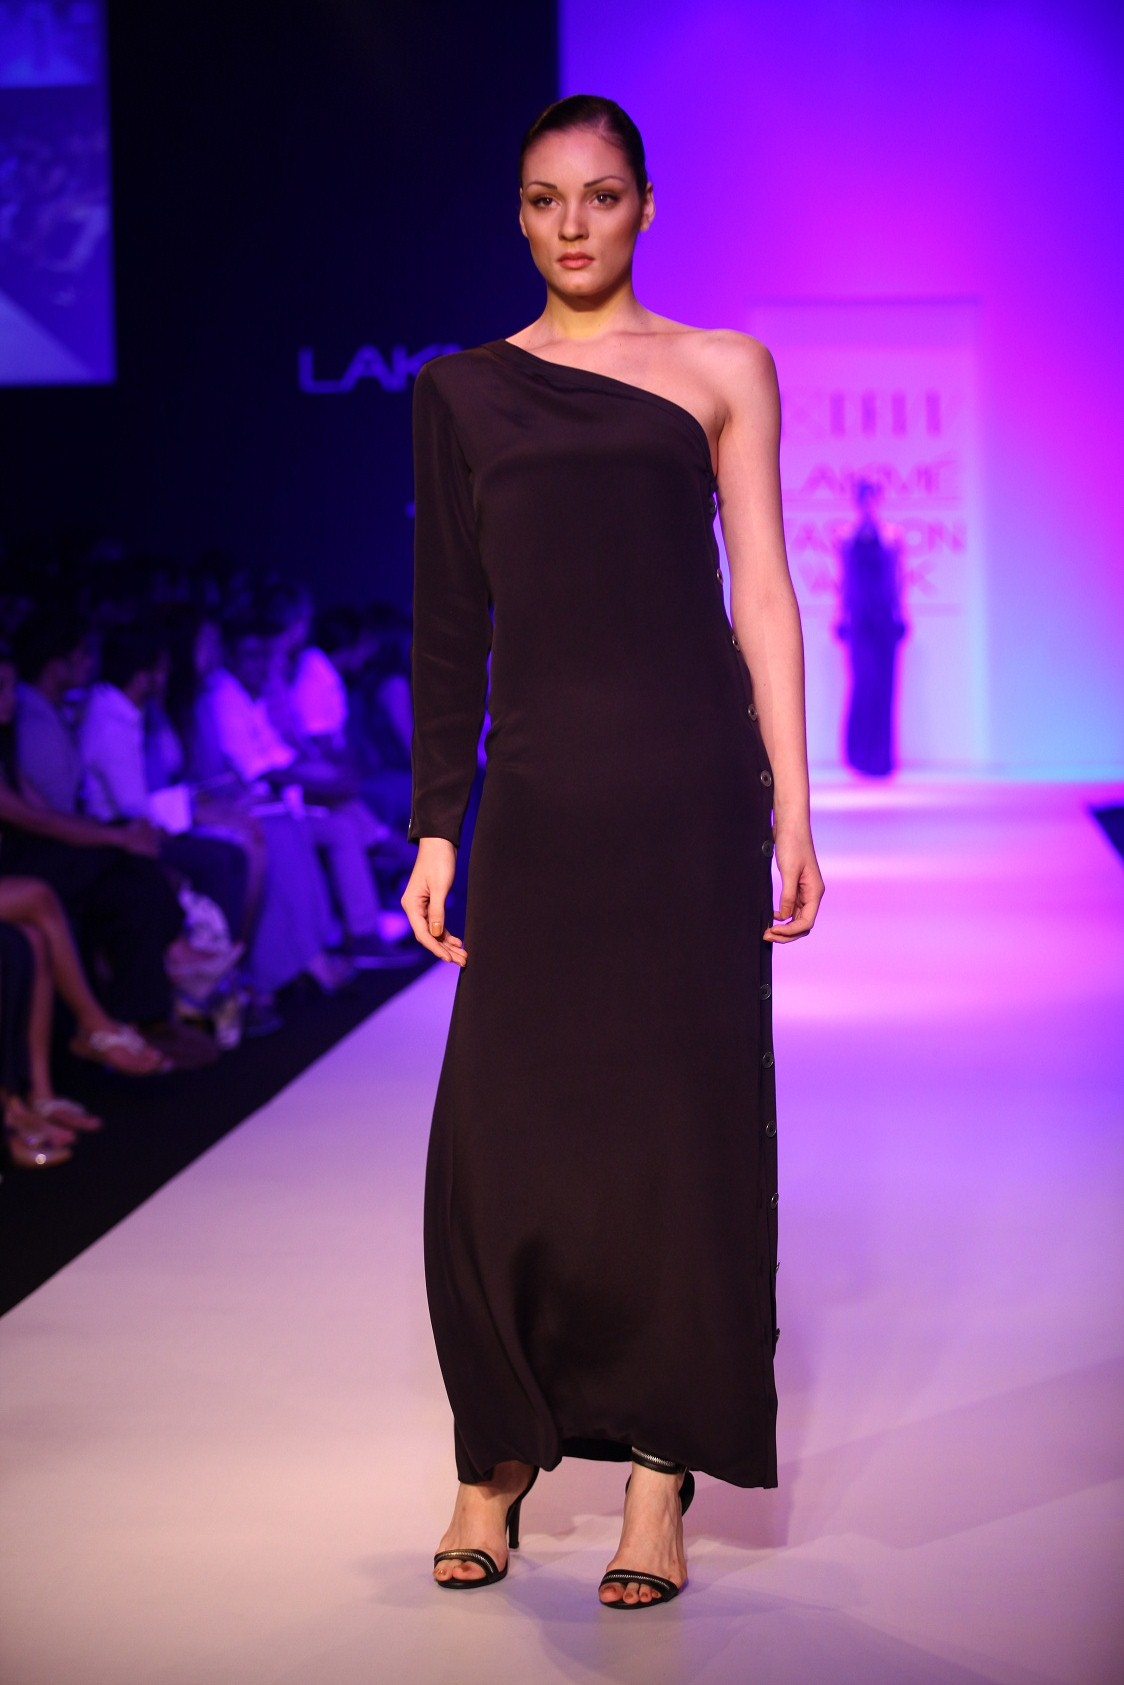 DRVV by Dhruv Kapur's range, with the quirky title at Lakmé Fashion Week Winter/Festive 2013, played a staccato like tune of unbalanced asymmetry that gave a sense of abandonment to the silhouettes.